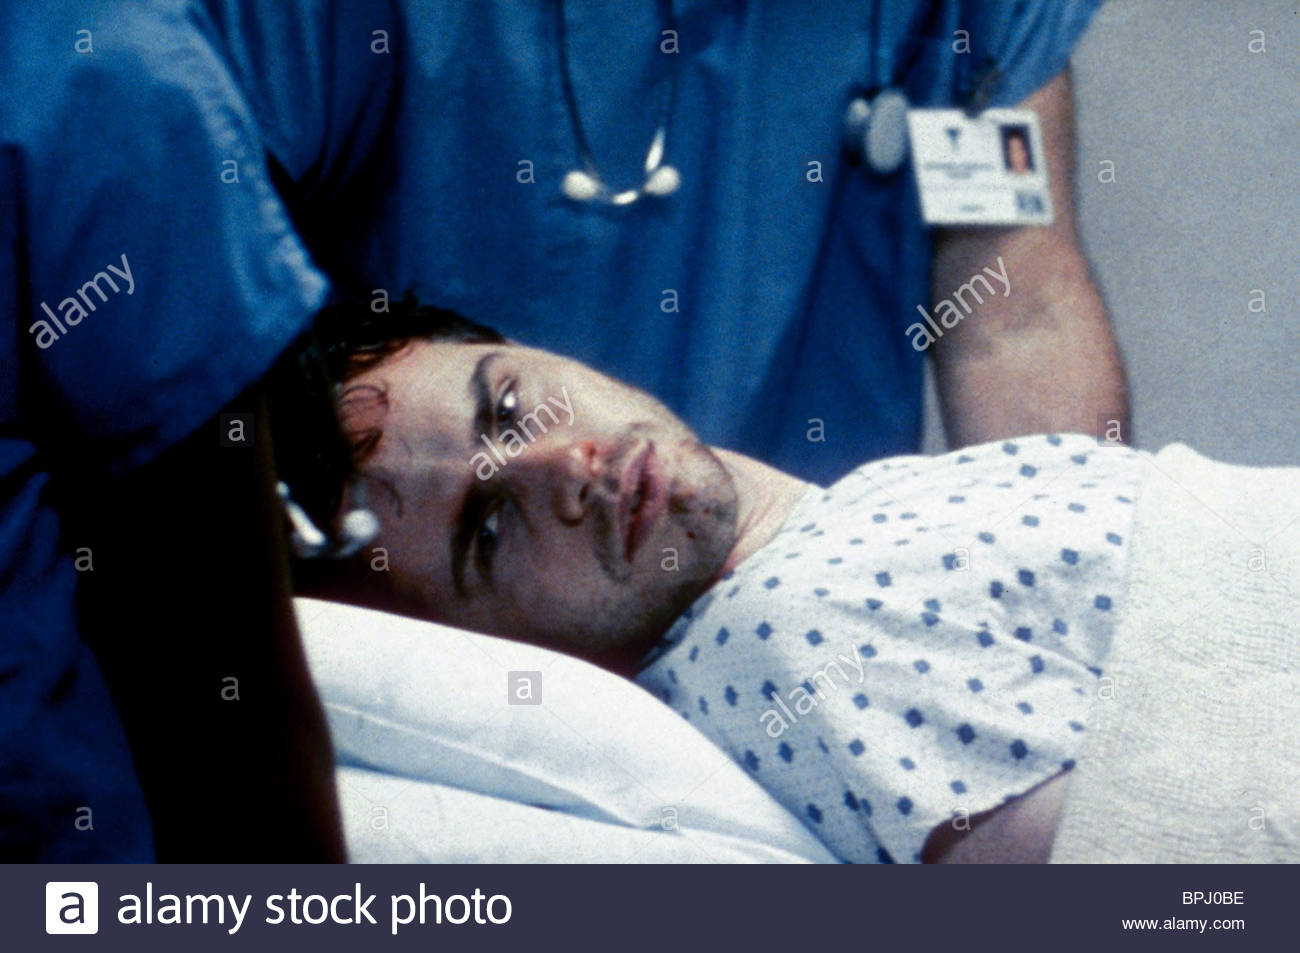 rider strong cabin fever 2002 stock photo royalty free image